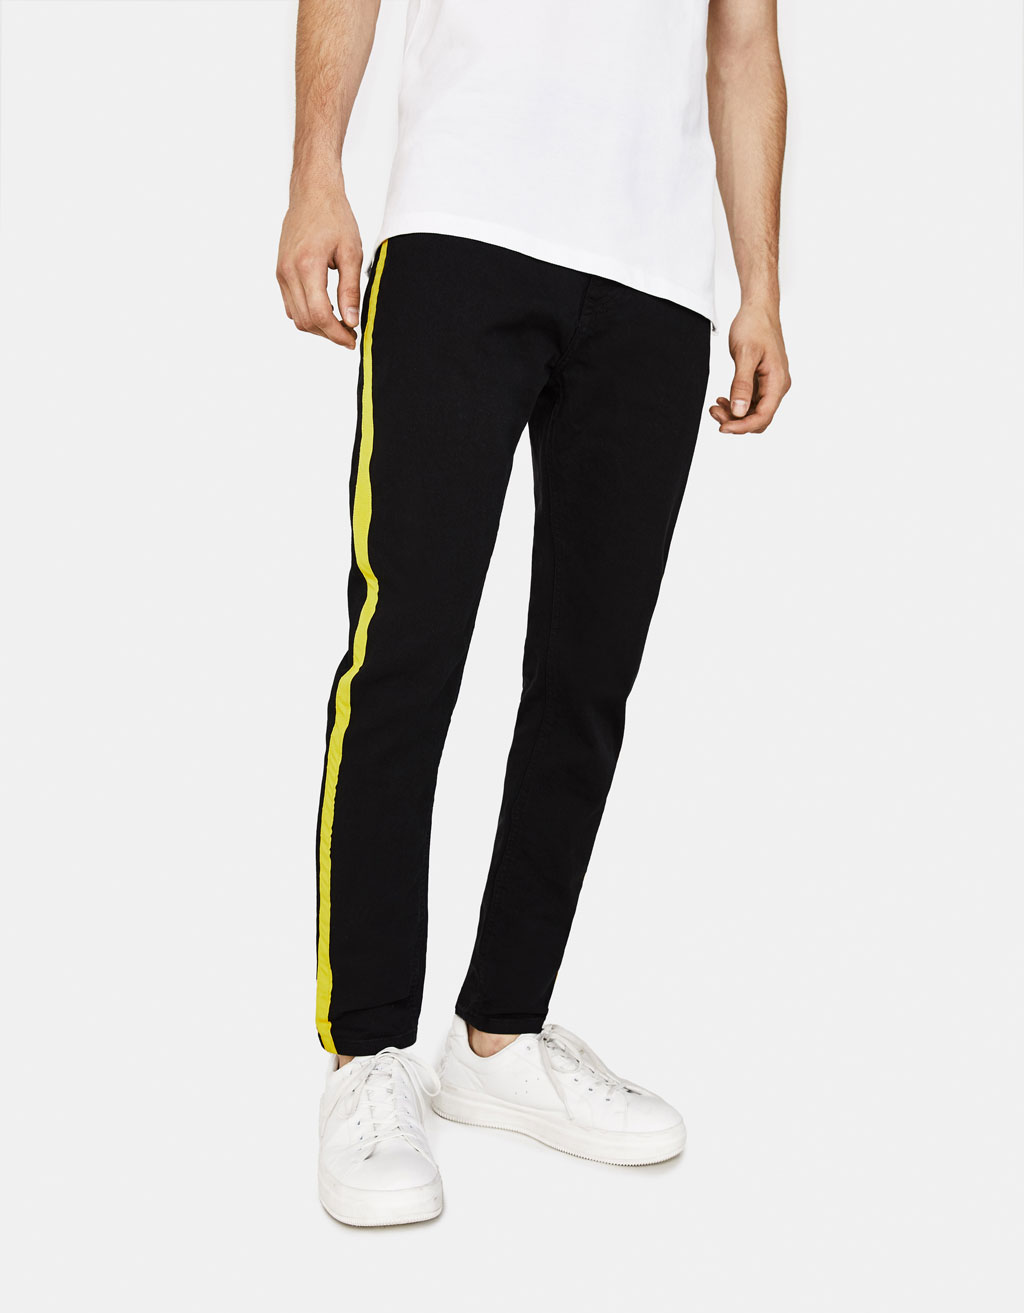 Skinny pants with side taping